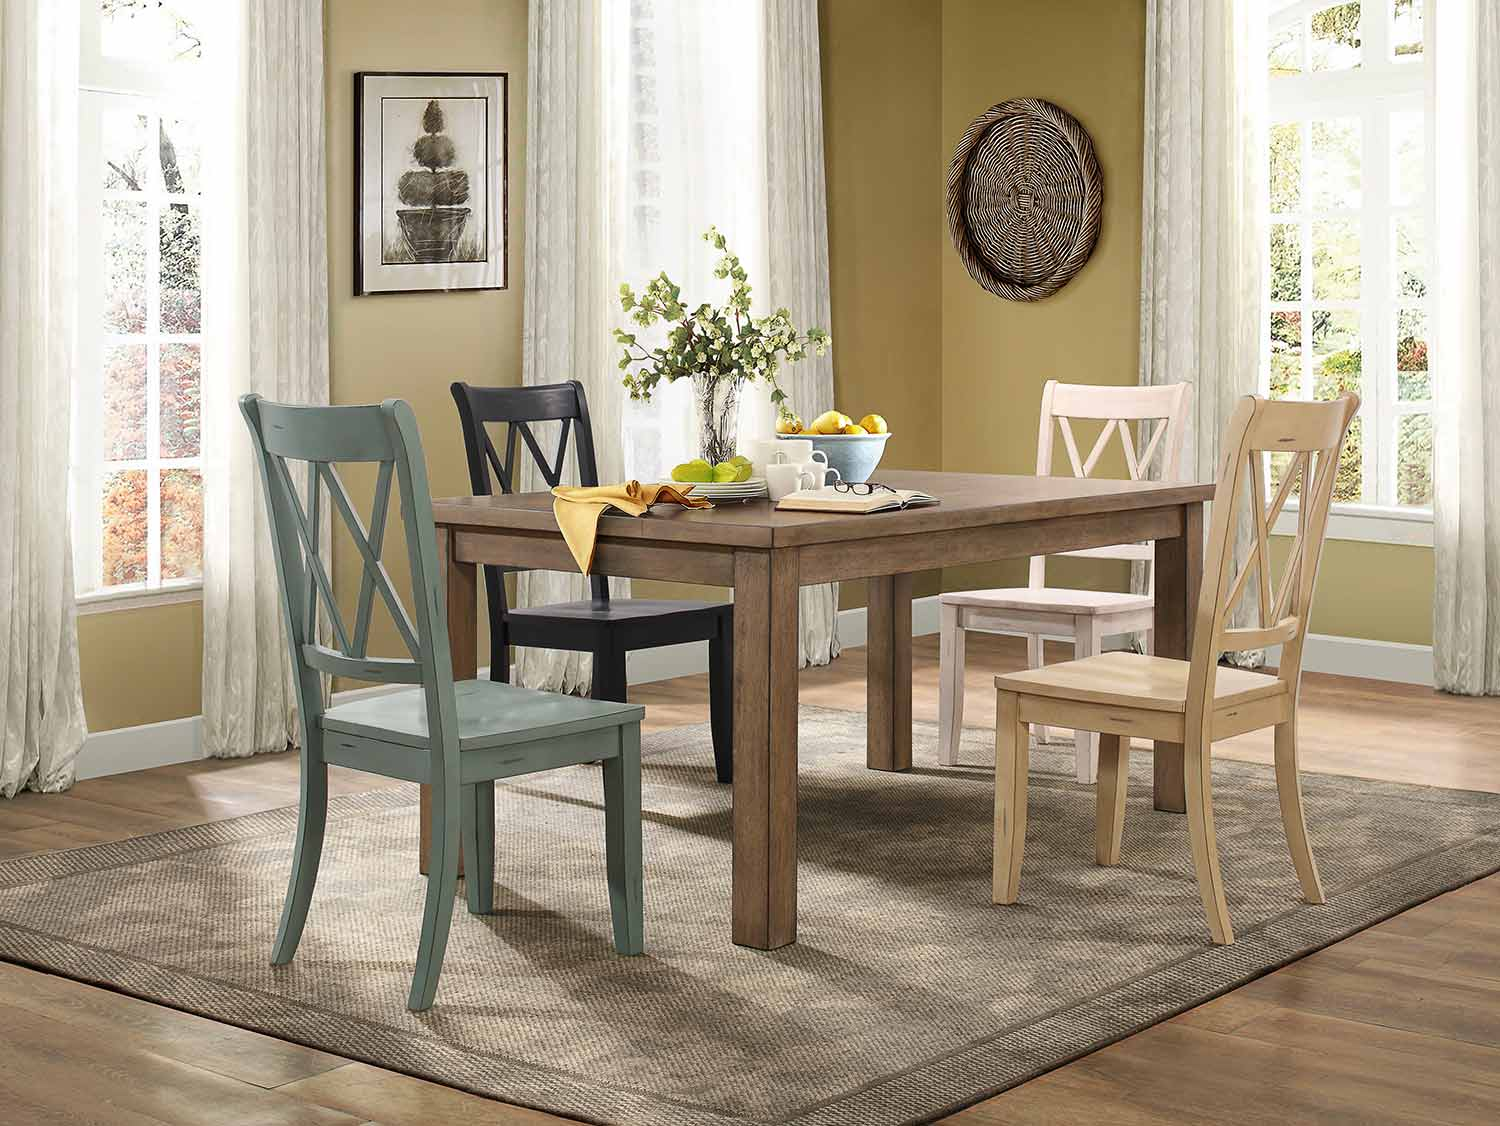 Homelegance Janina Rectangular Dining Set